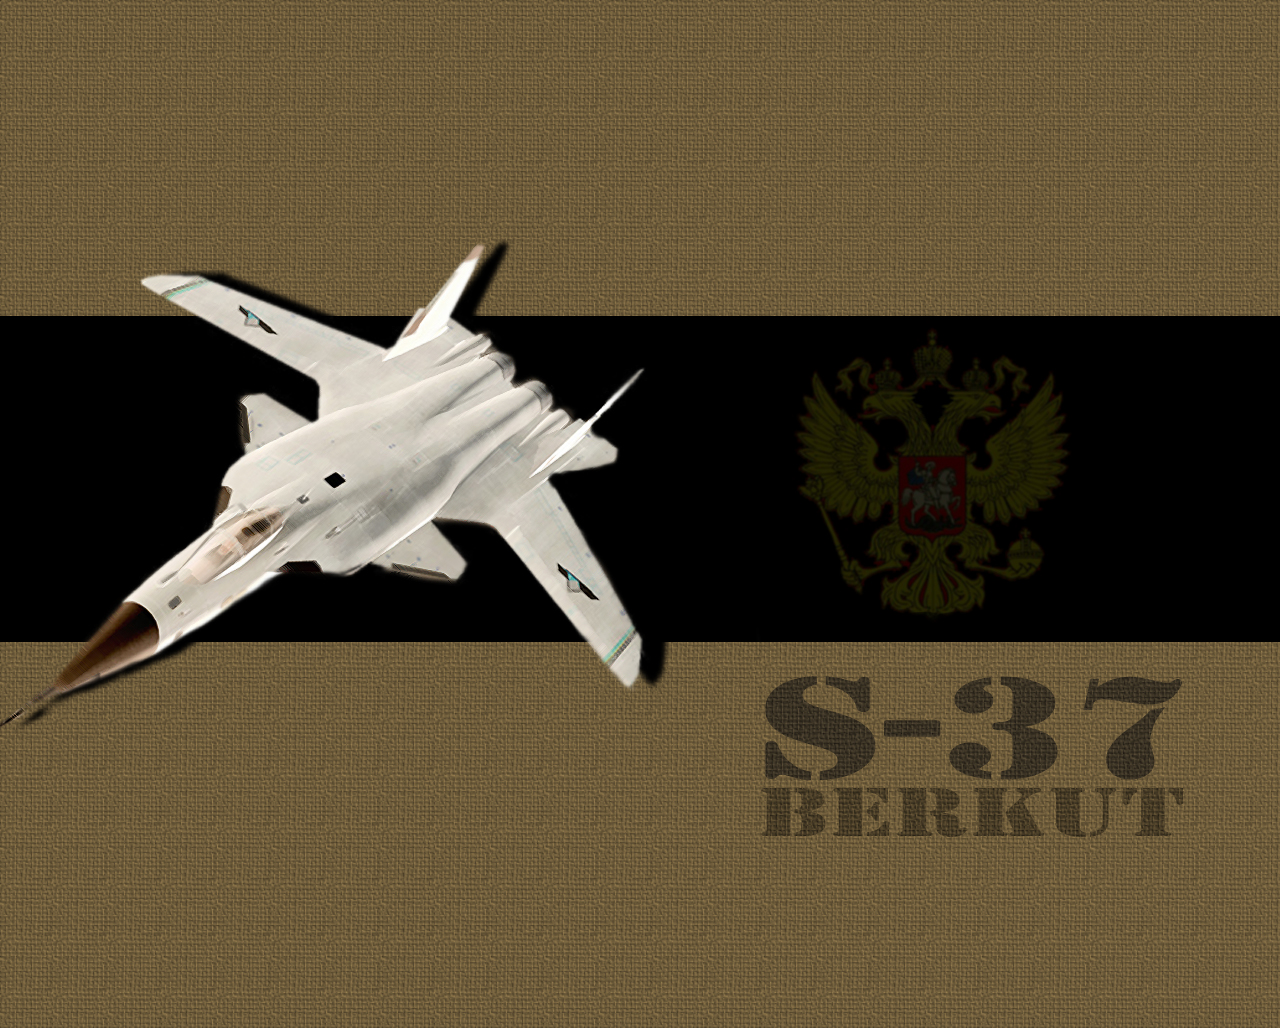 s-37 berkut 9 by maggot555